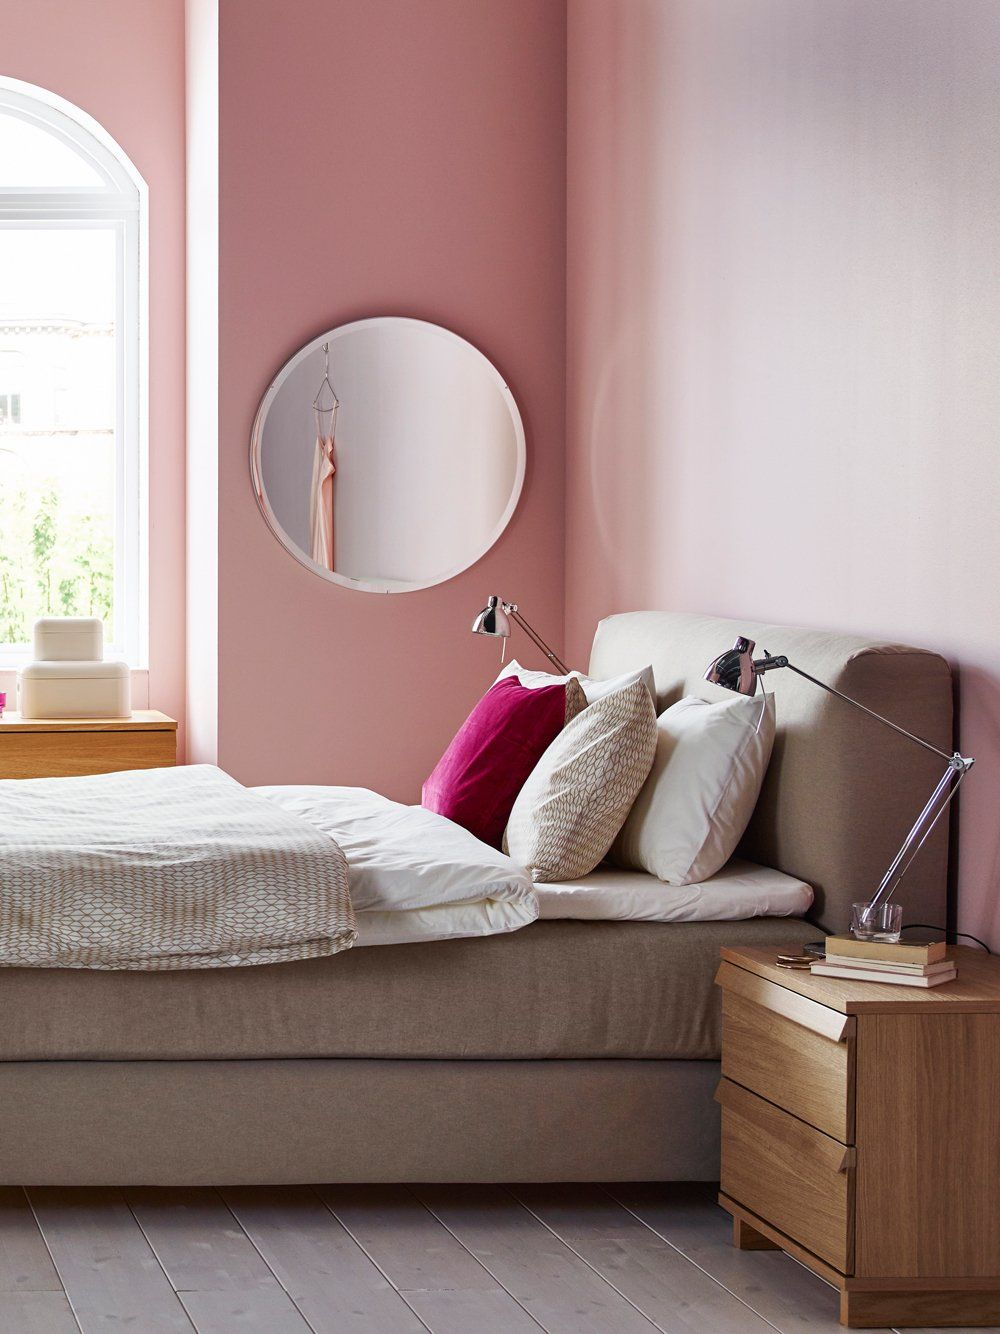 Ikea Katalog 2016 Schlafzimmer Wohntrends 2017 Homer Ikea Dream Bedroom Und Bedroom